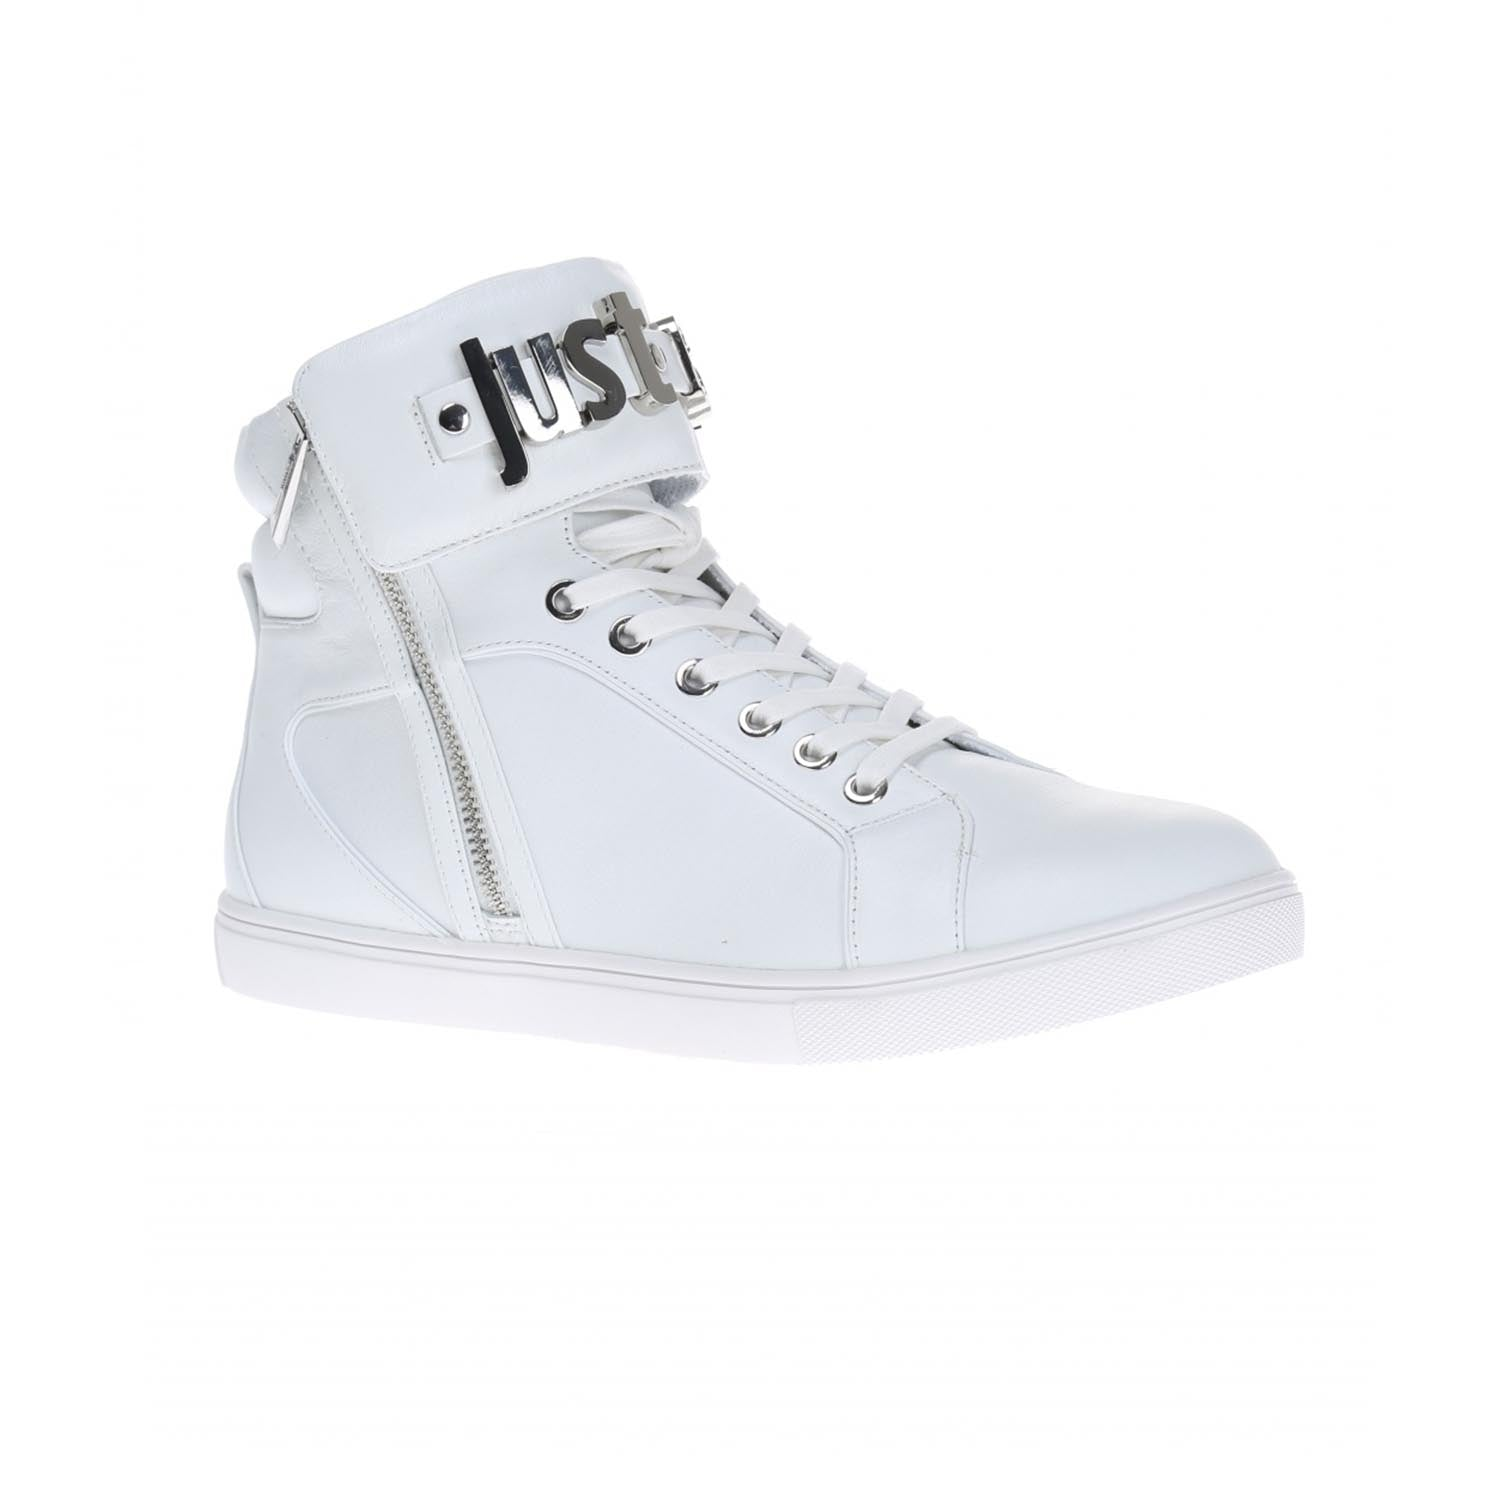 Just Cavalli Metal Branding High Top Leather Trainer